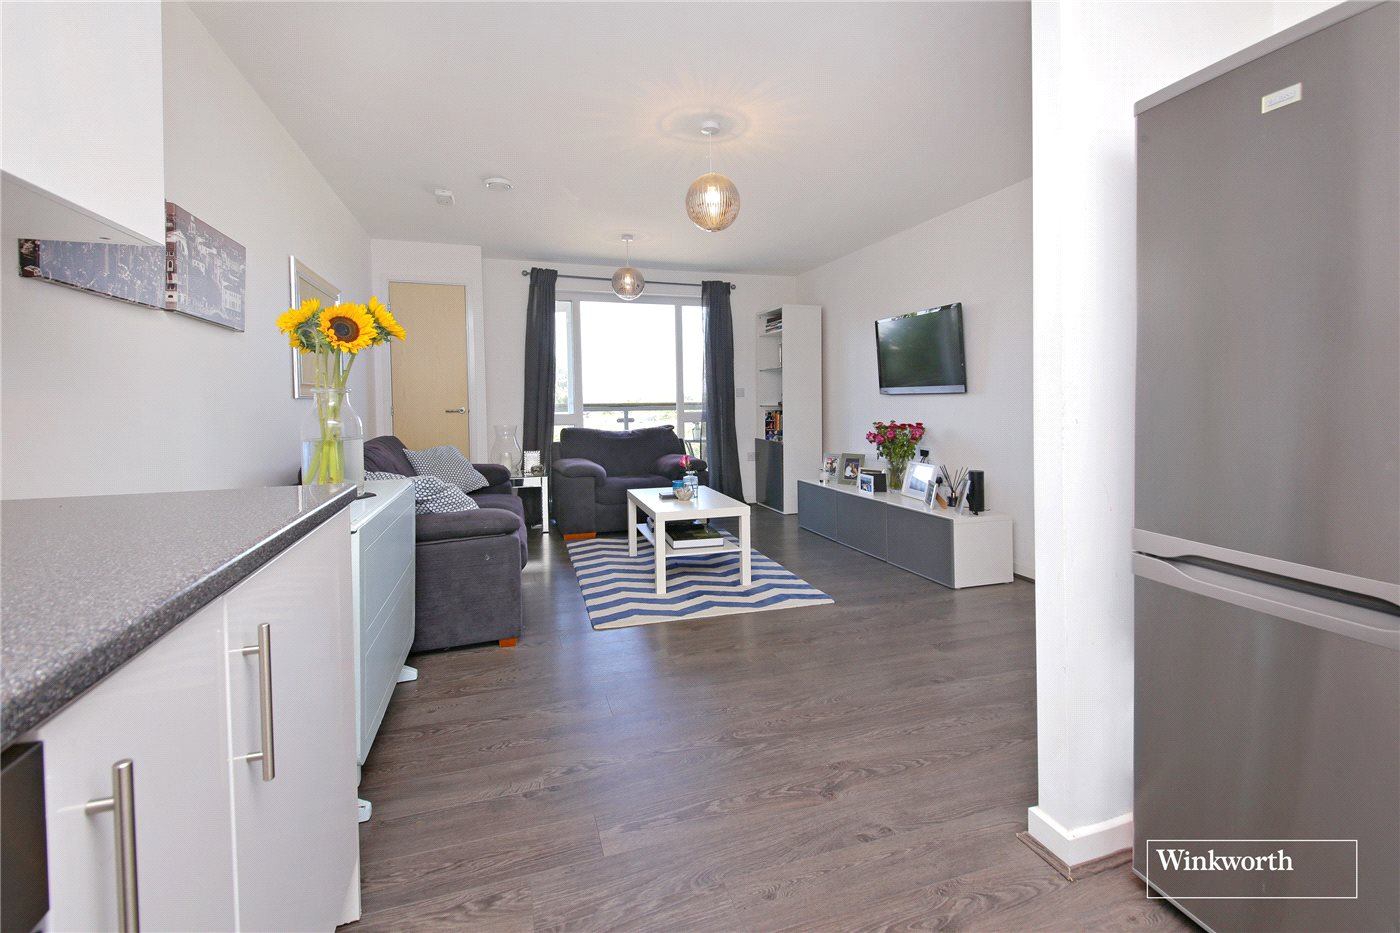 2 Bedrooms Flat for sale in Lockwood Court, Todd Close, Borehamwood, Hertfordshire, WD6